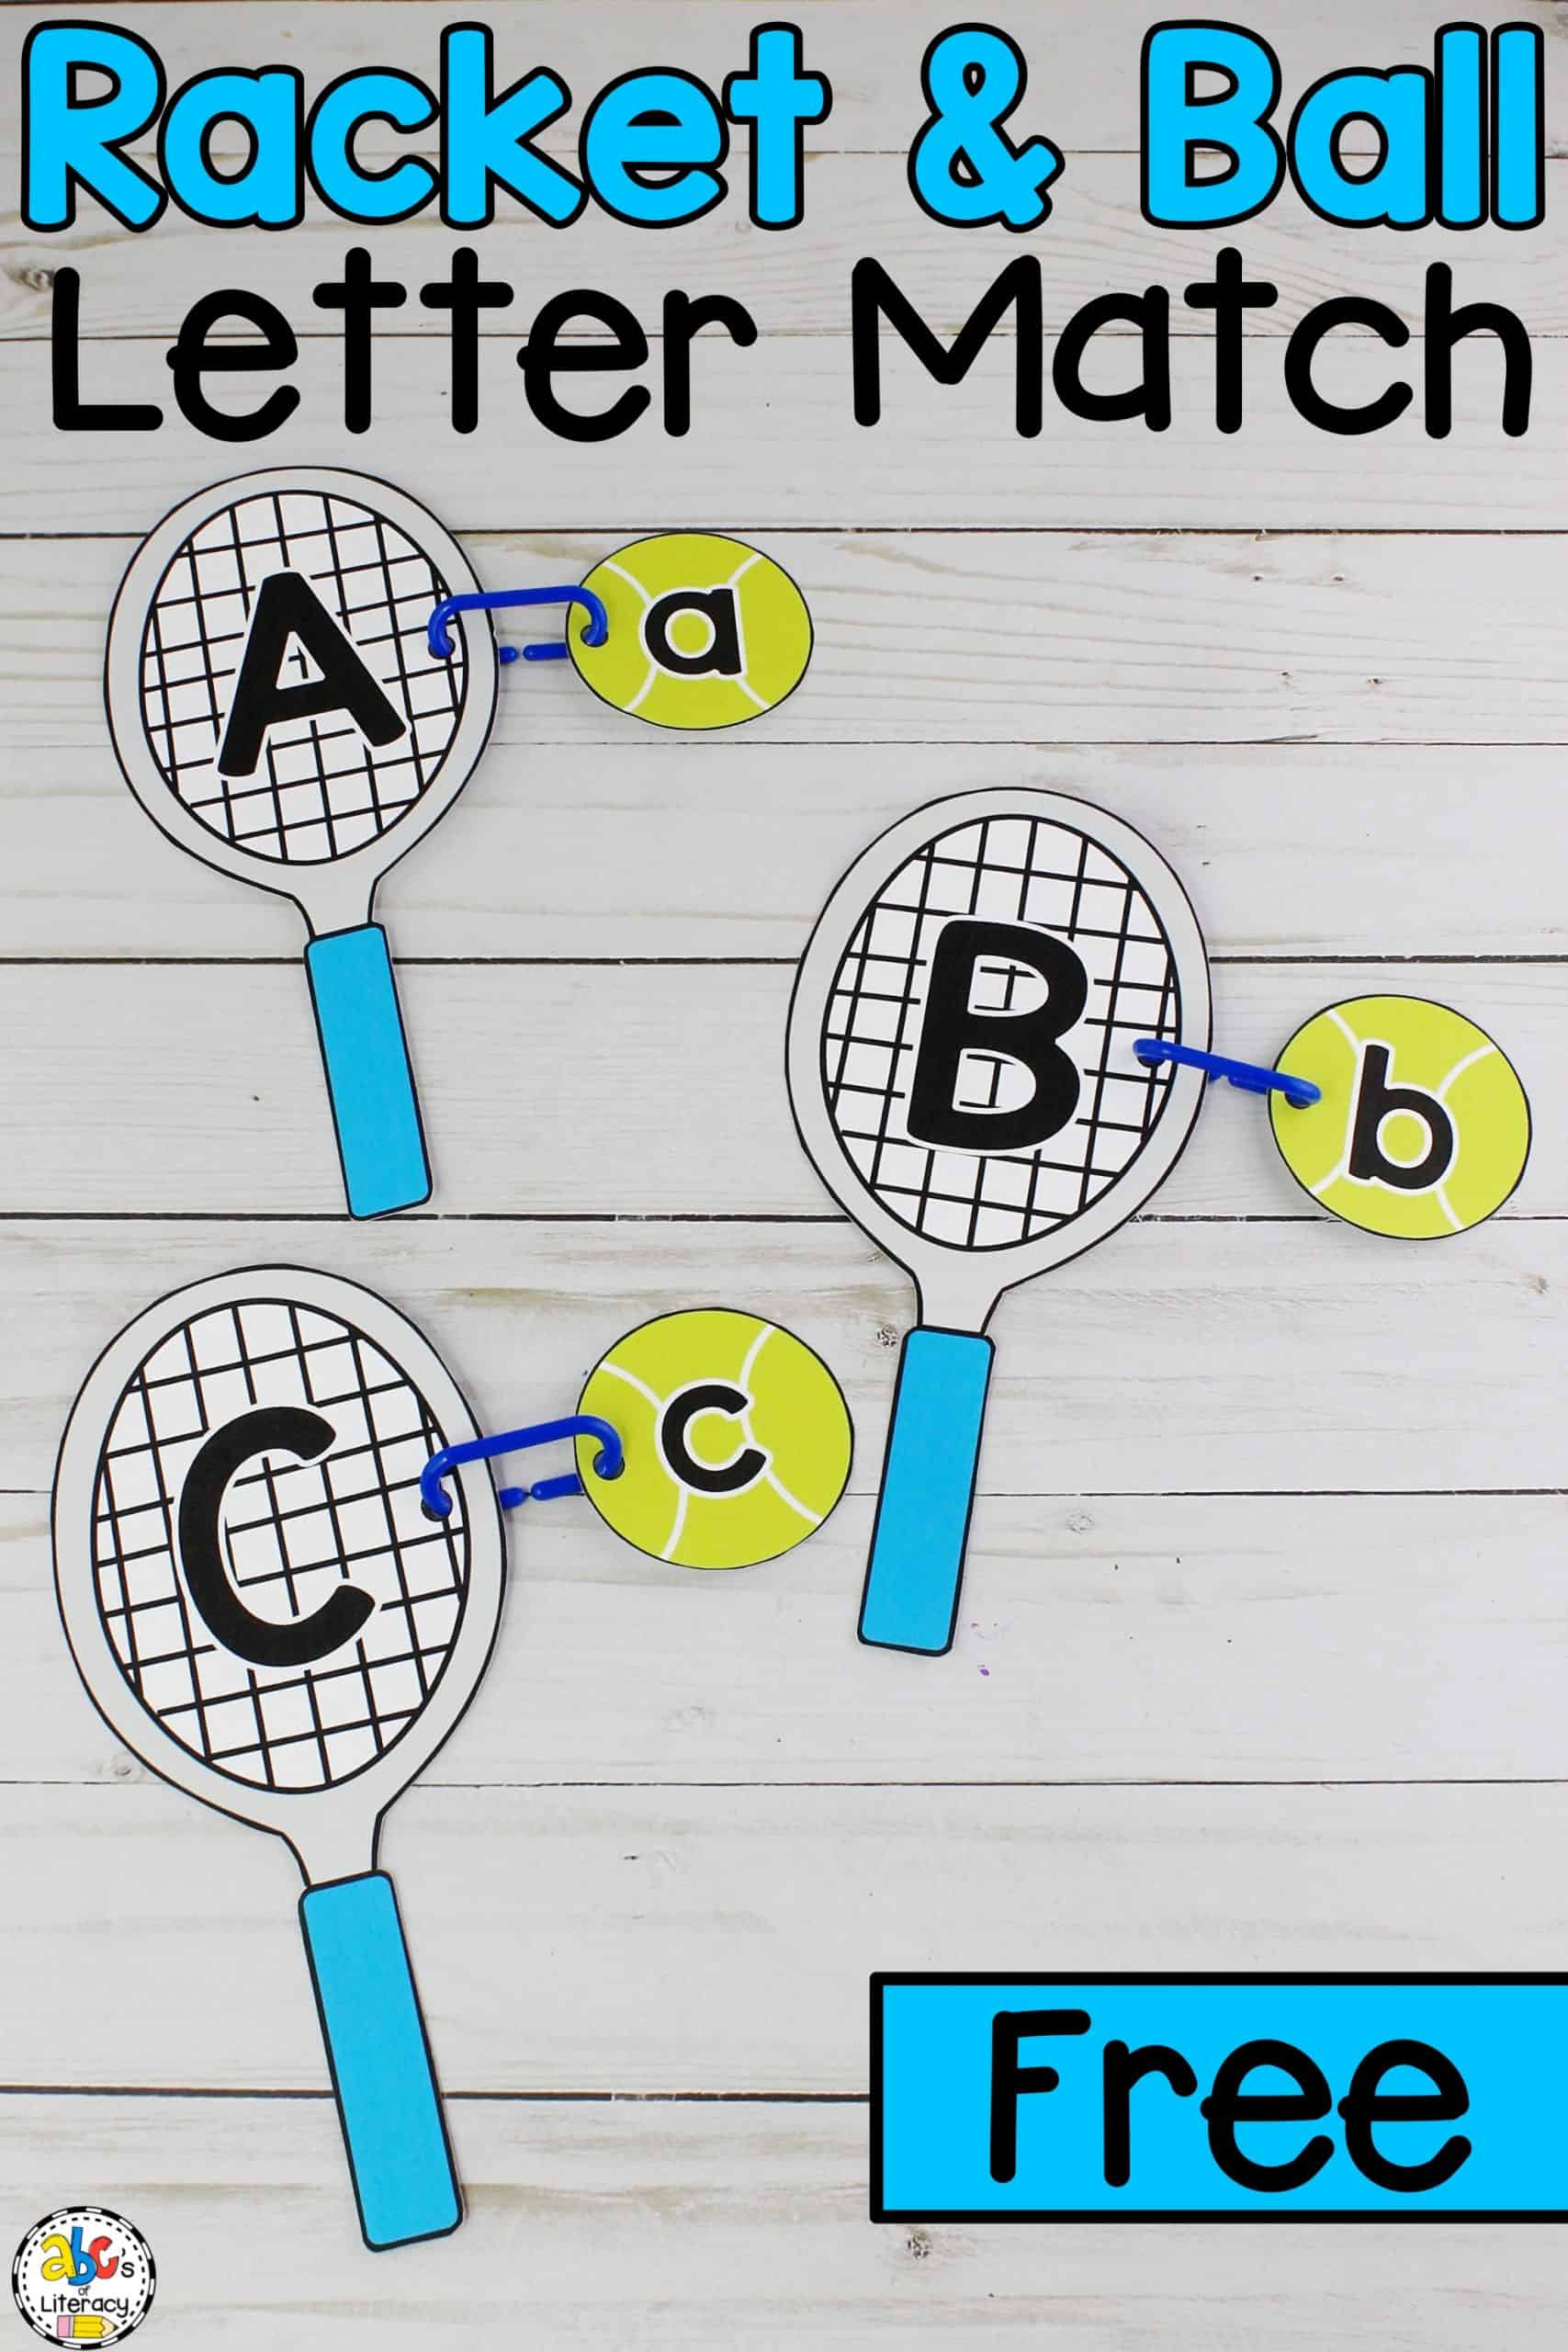 Tennis Racket & Ball Letter Match